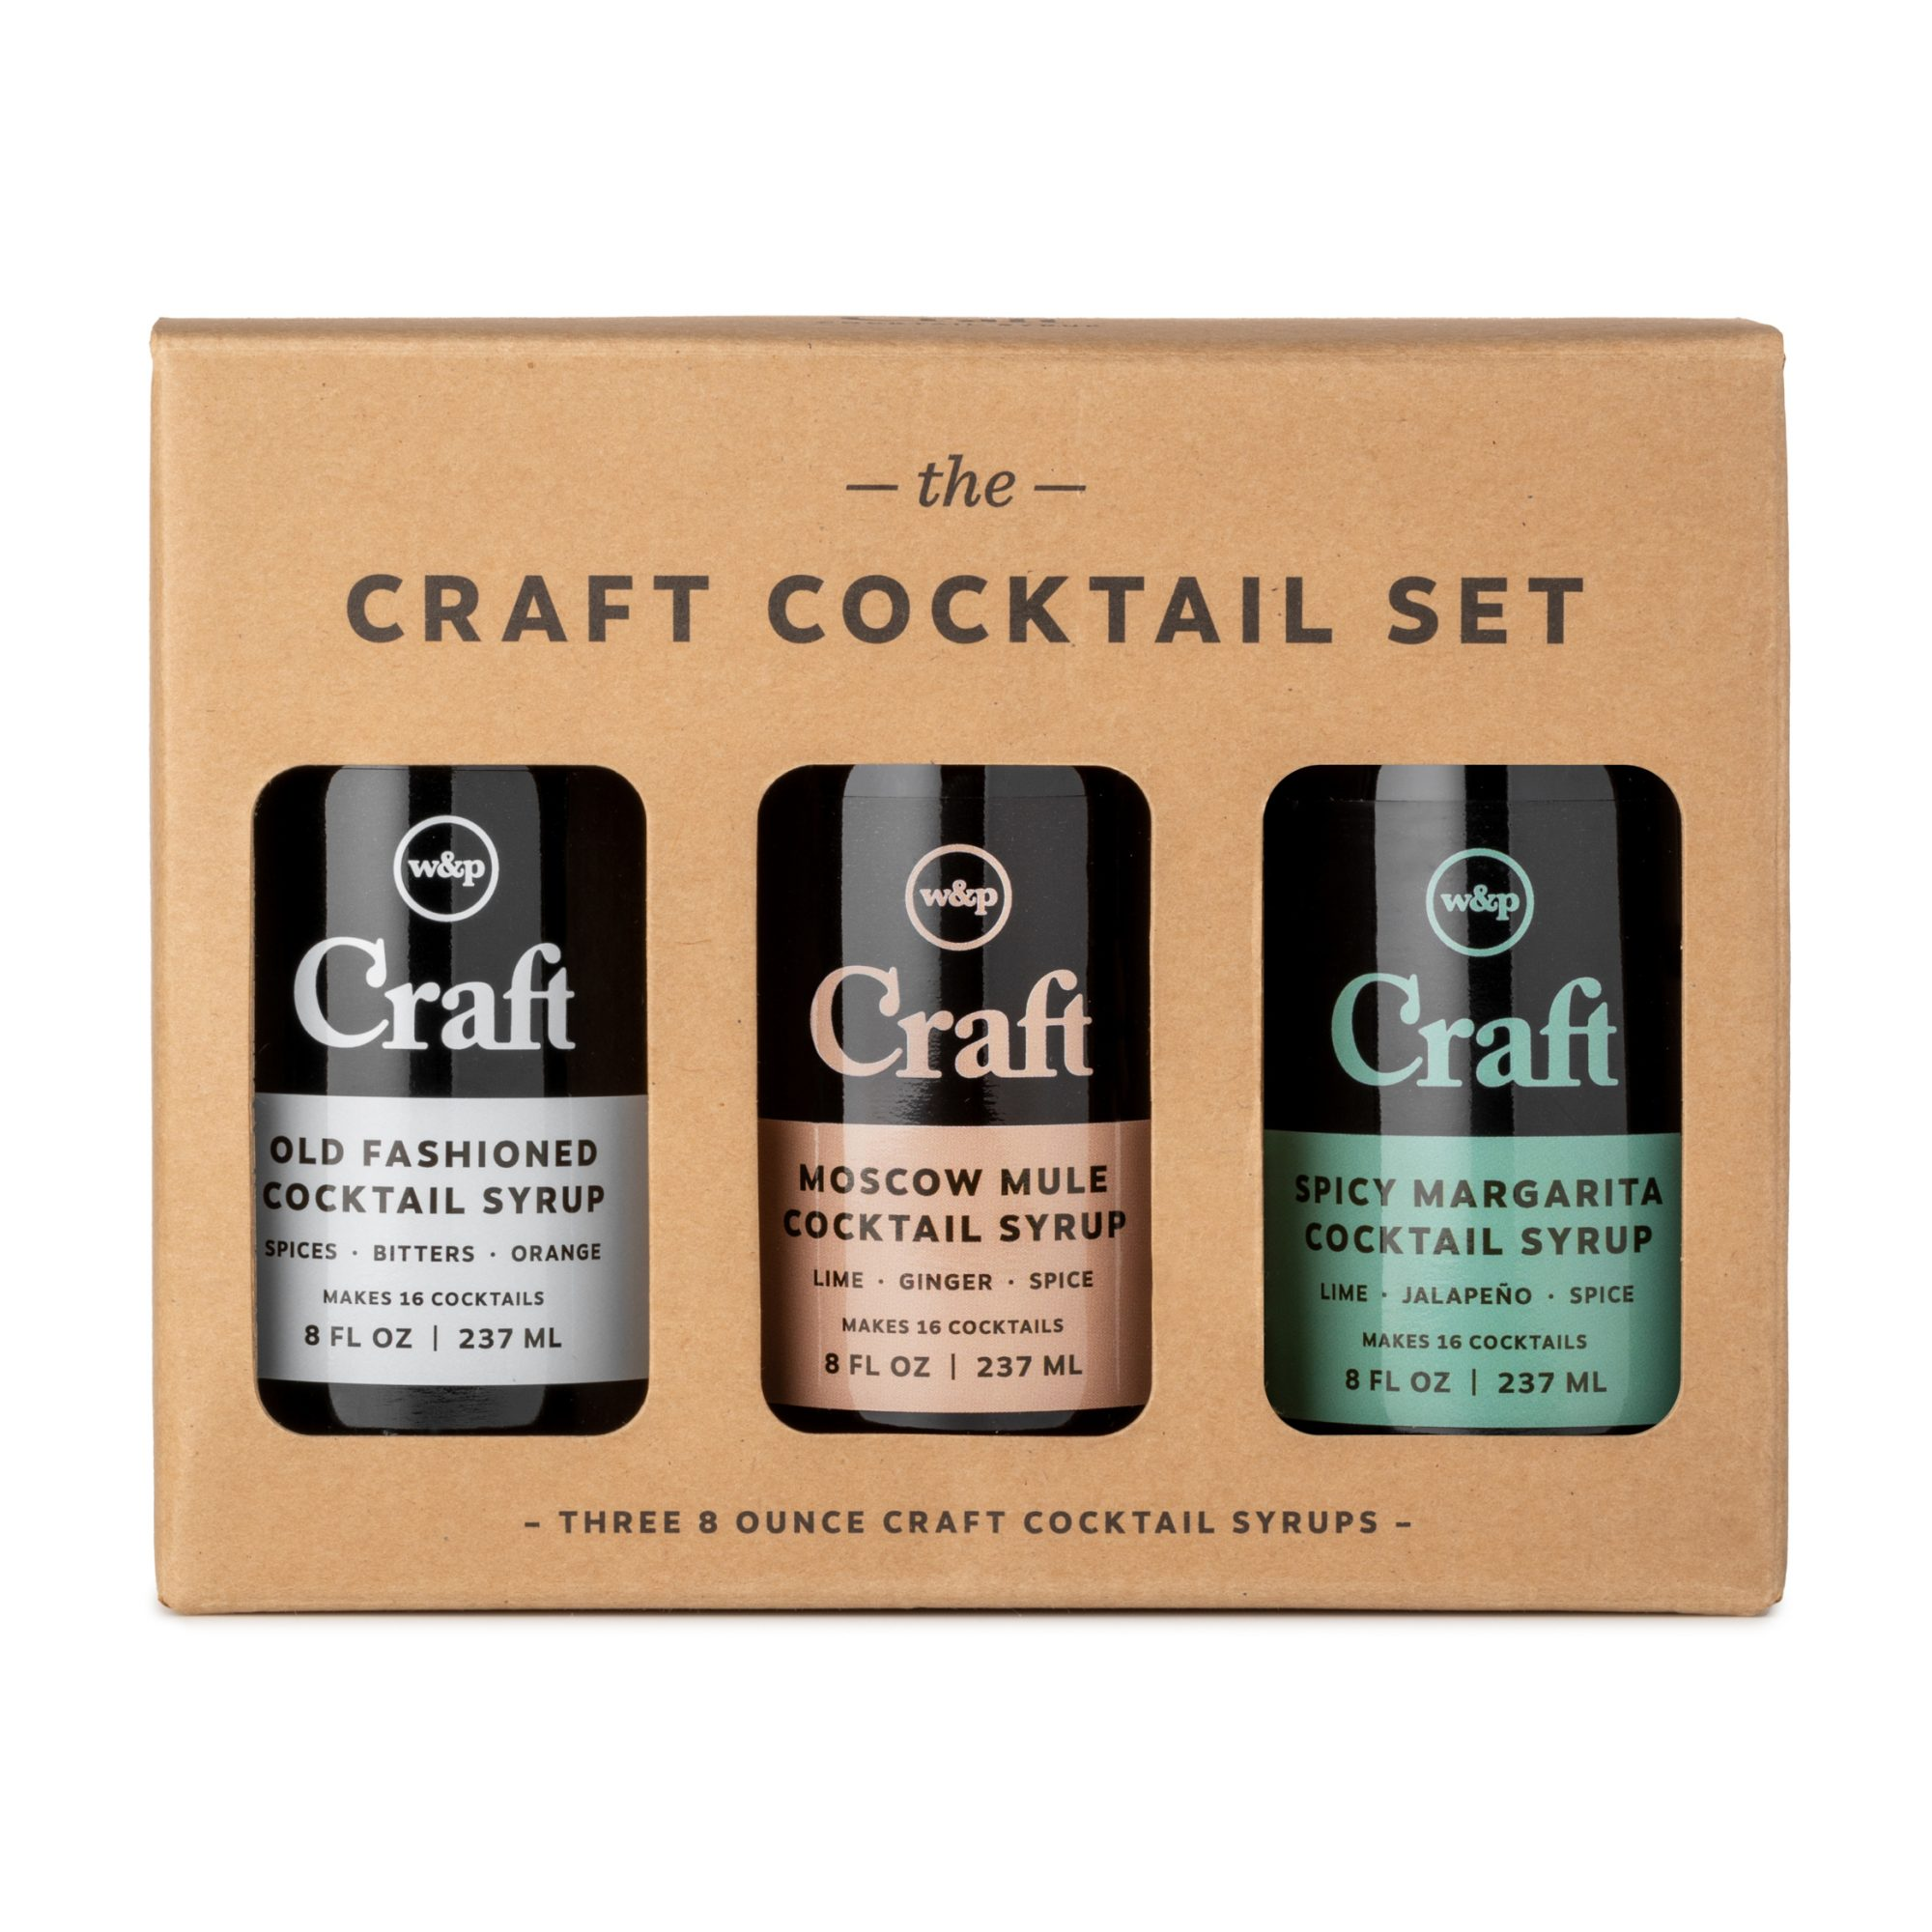 Craft Cocktail Set in a box